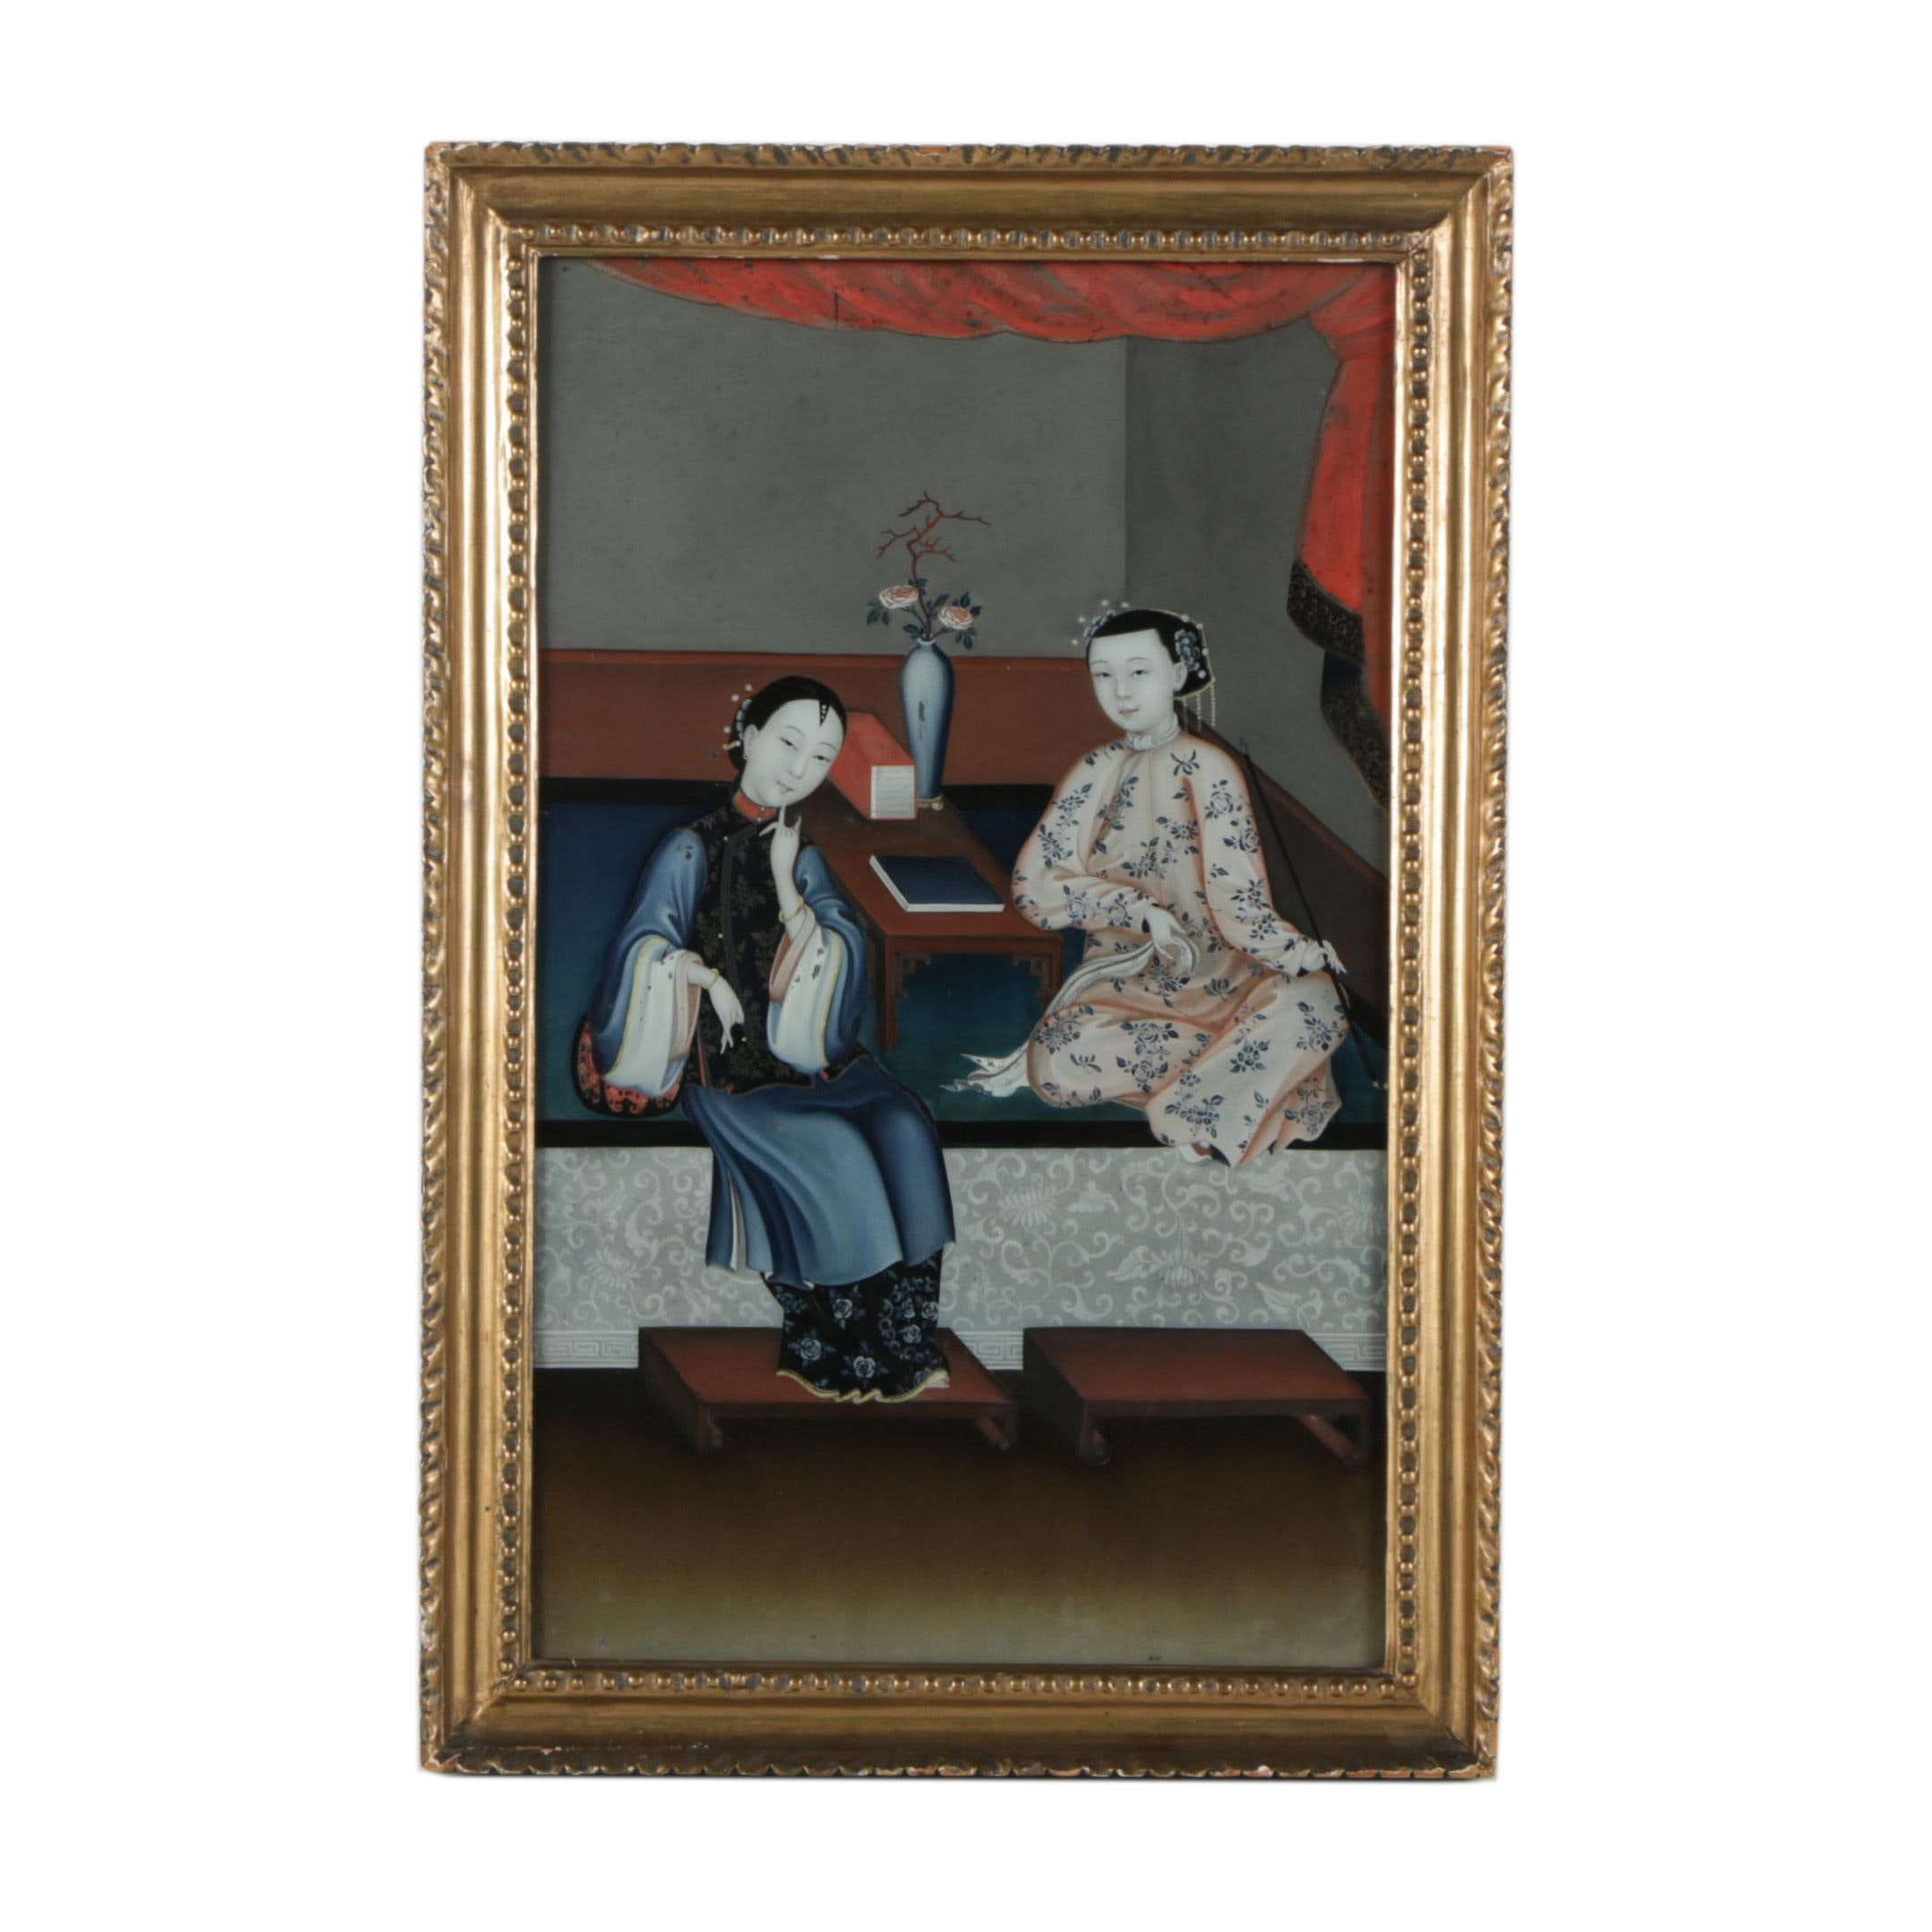 Chinese Reverse Glass Painting of Female Figures